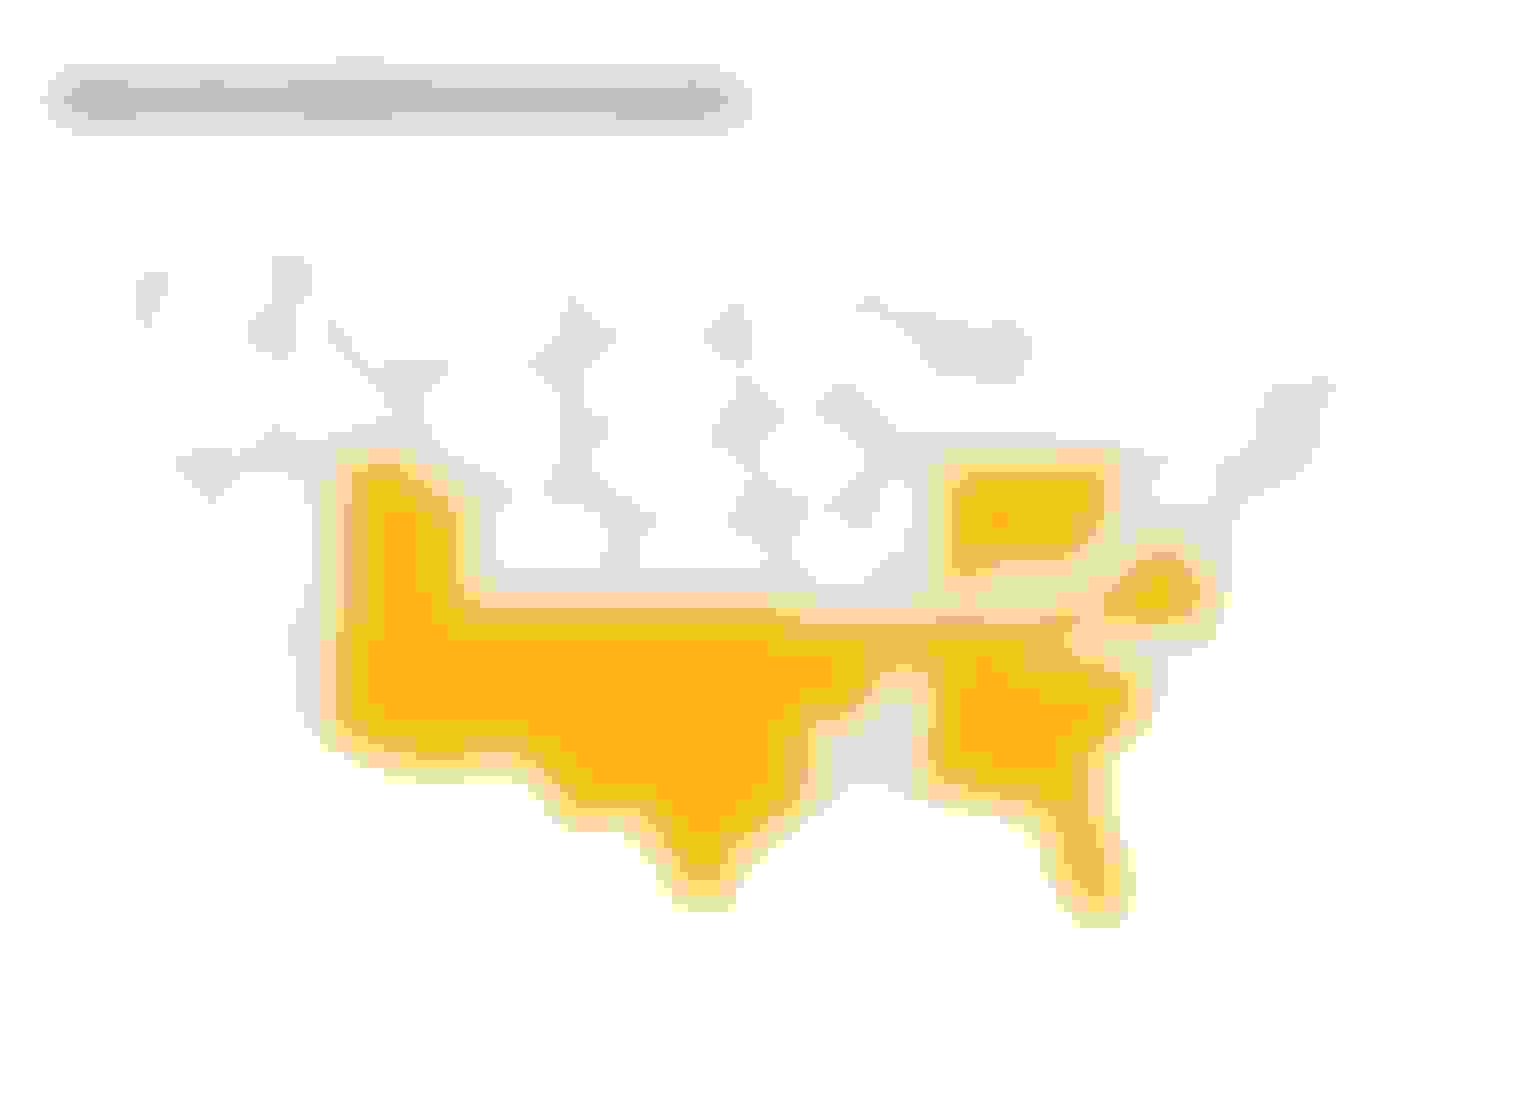 This map shows where GAINSCO insurance operates.